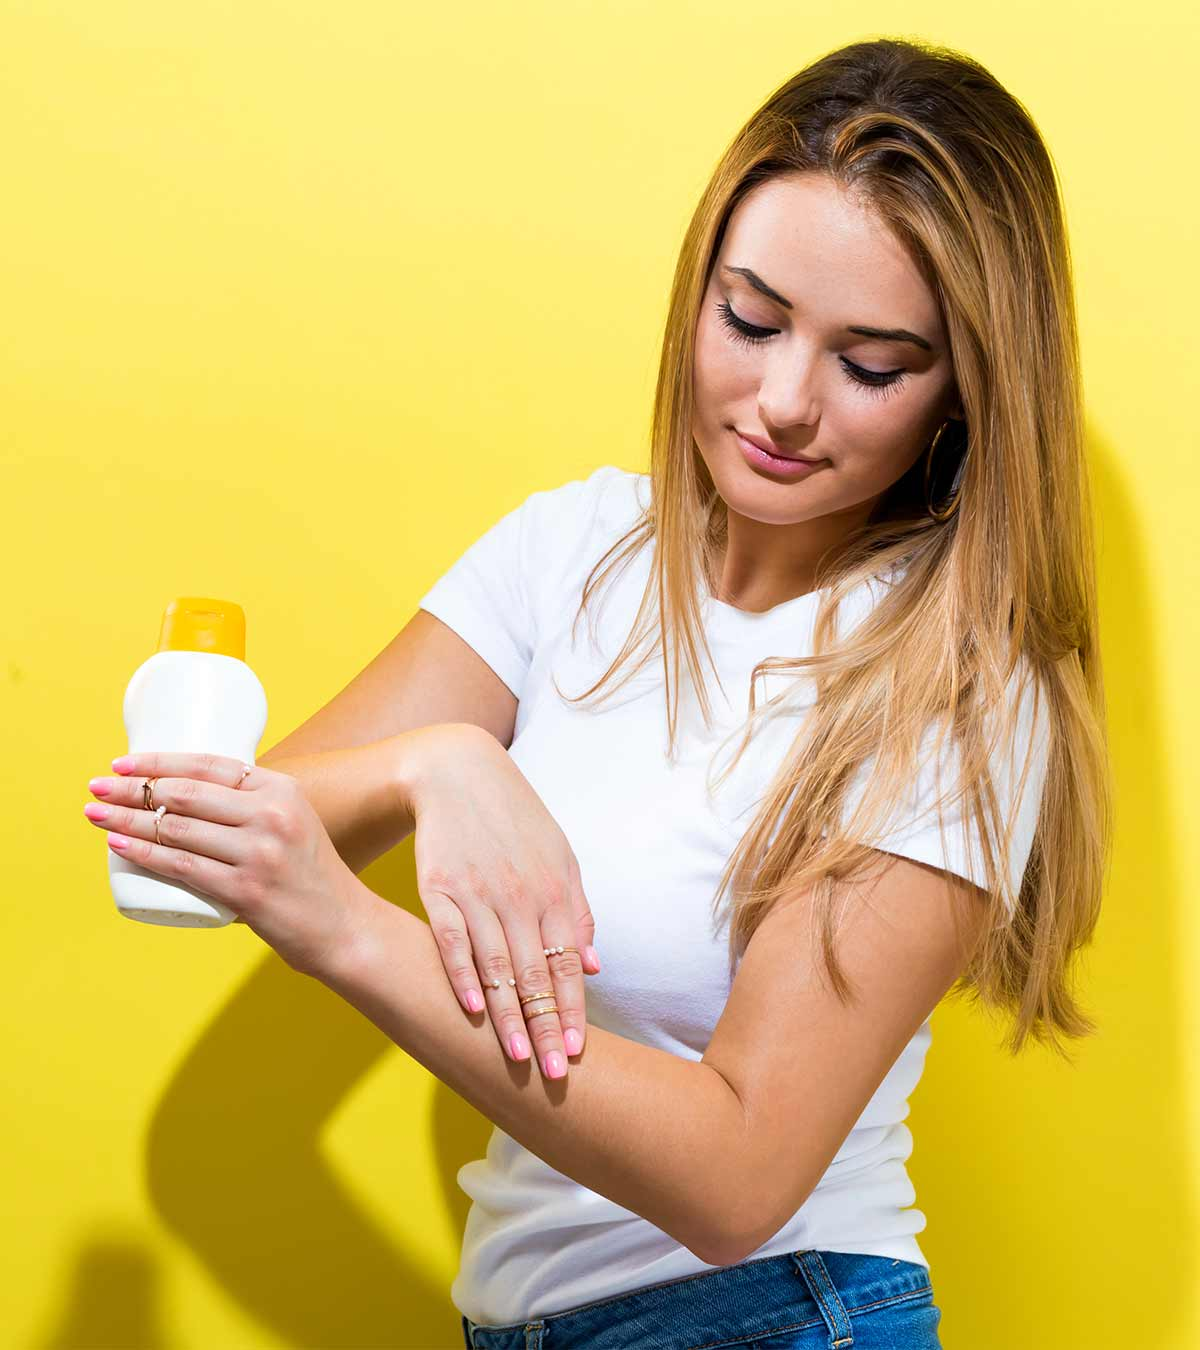 13 Best Lotions For Eczema In 2021